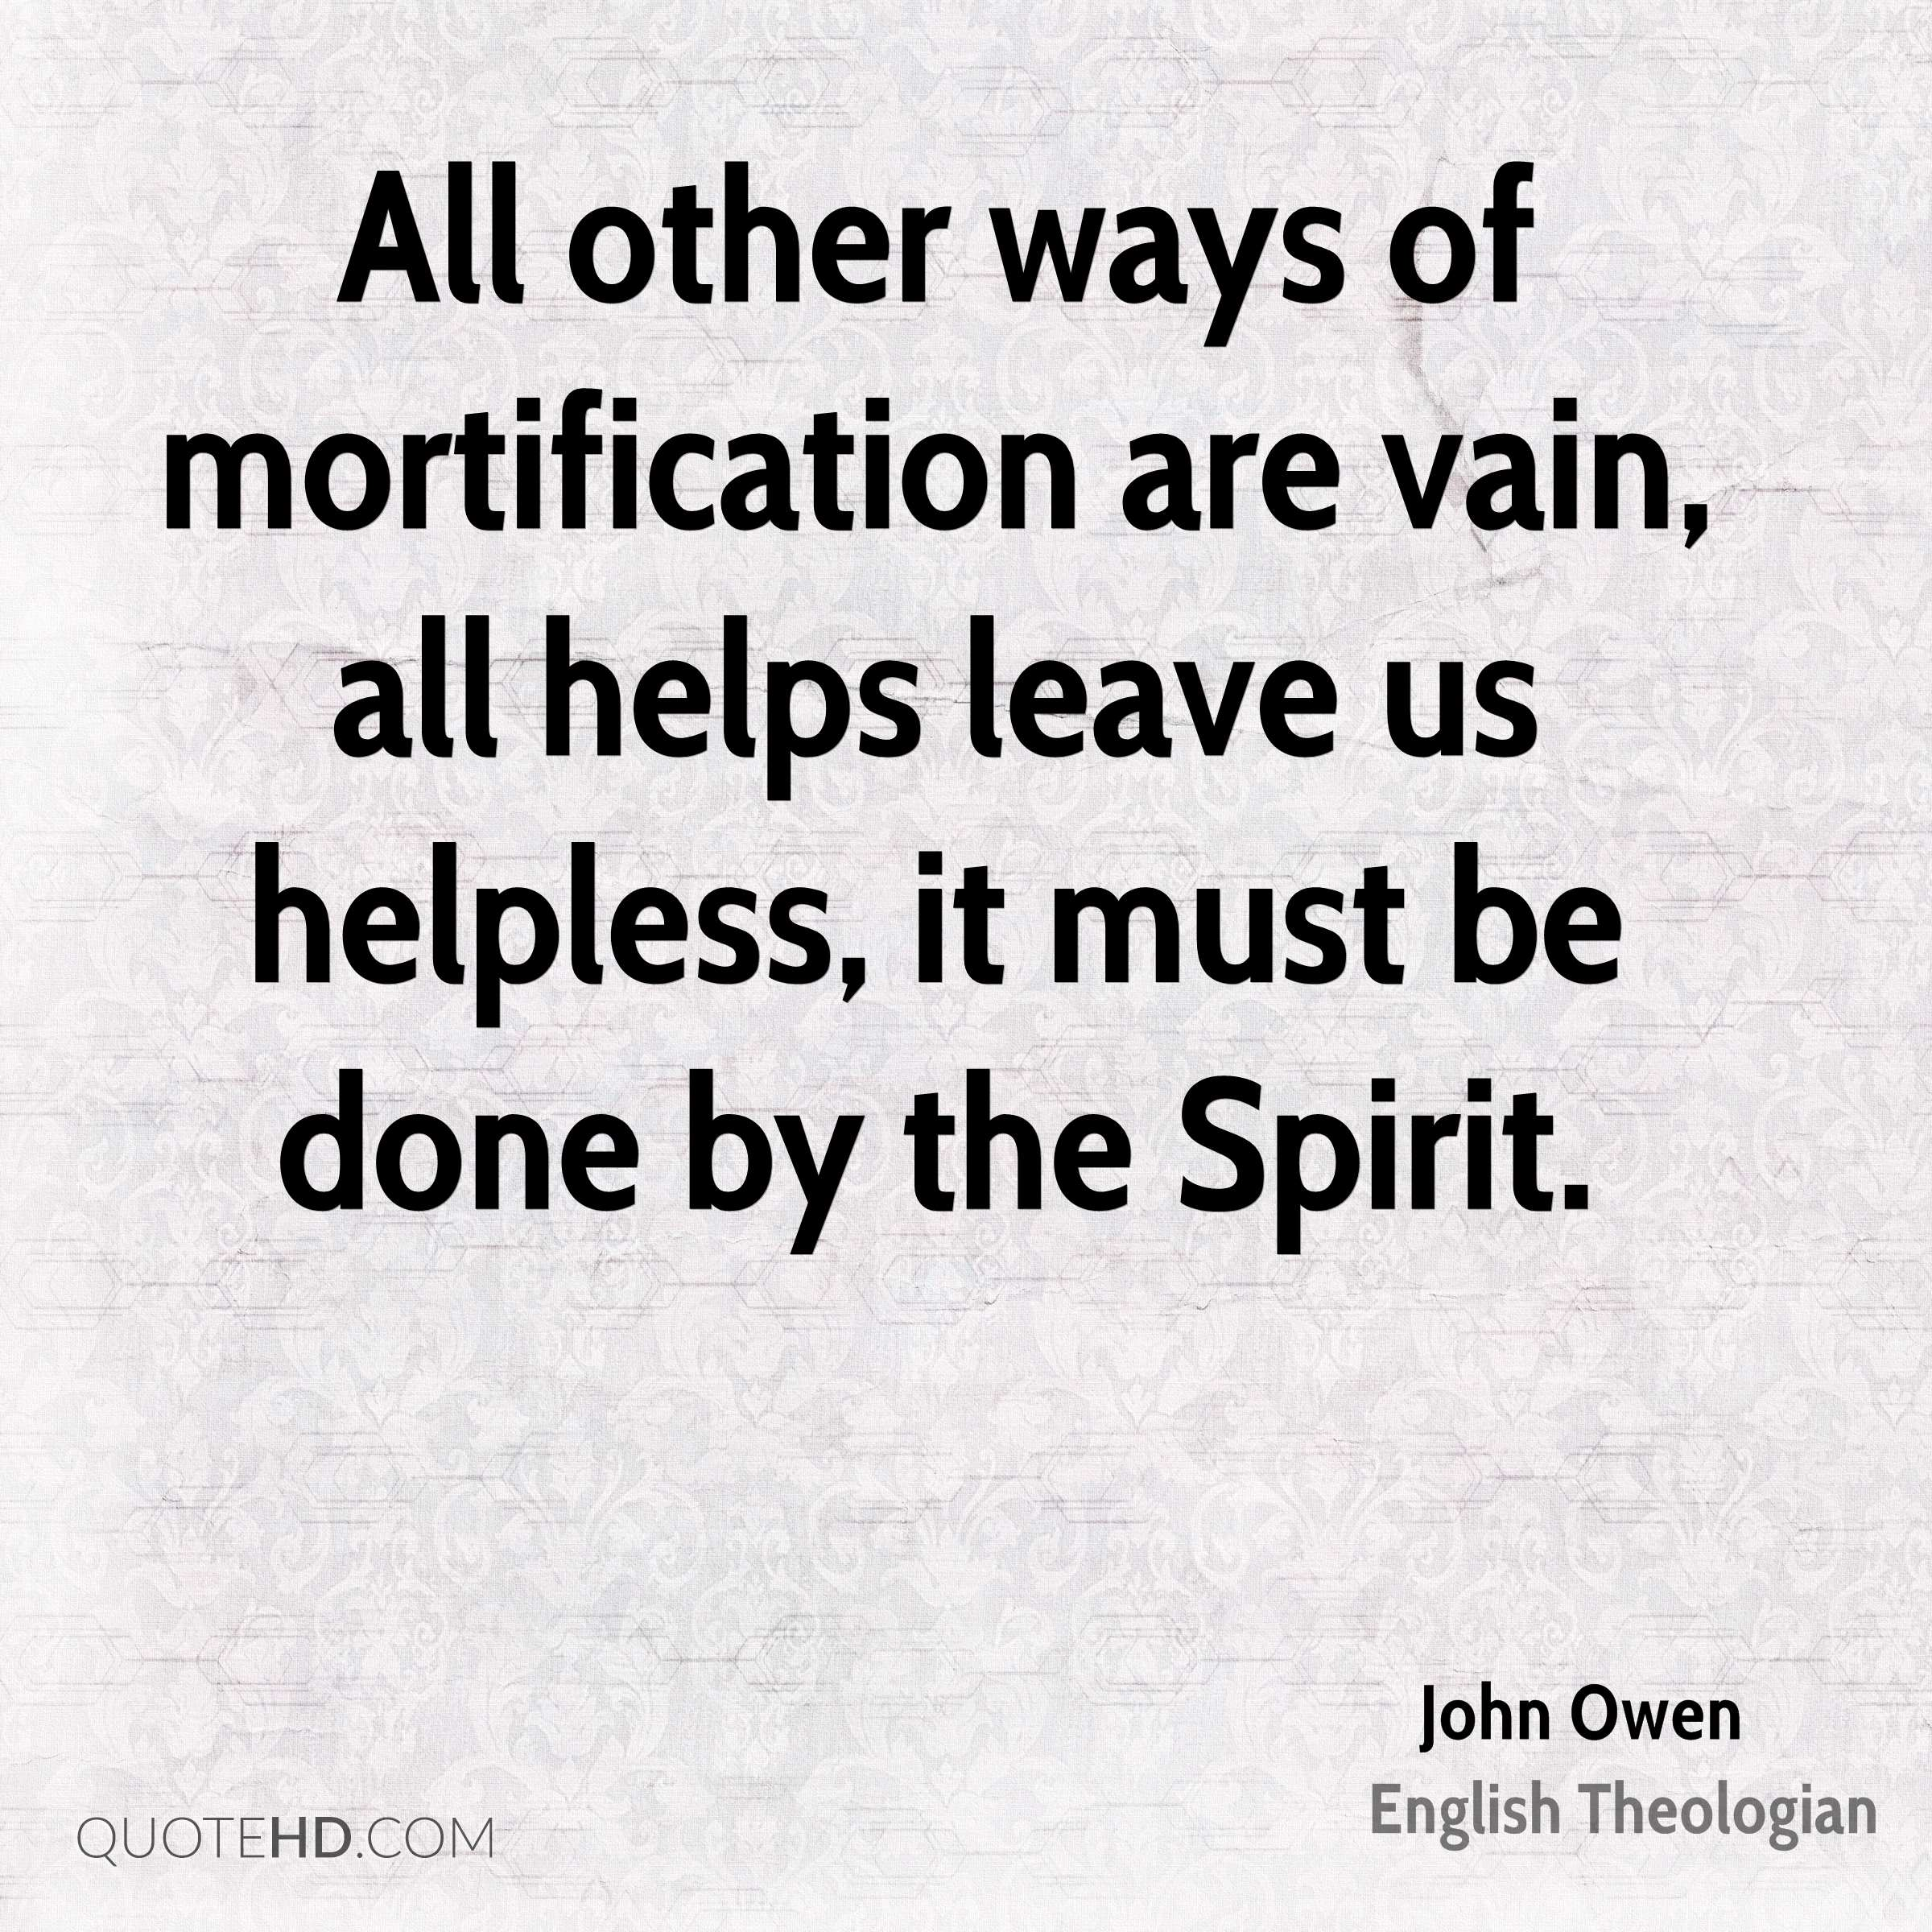 All other ways of mortification are vain, all helps leave us helpless, it must be done by the Spirit.